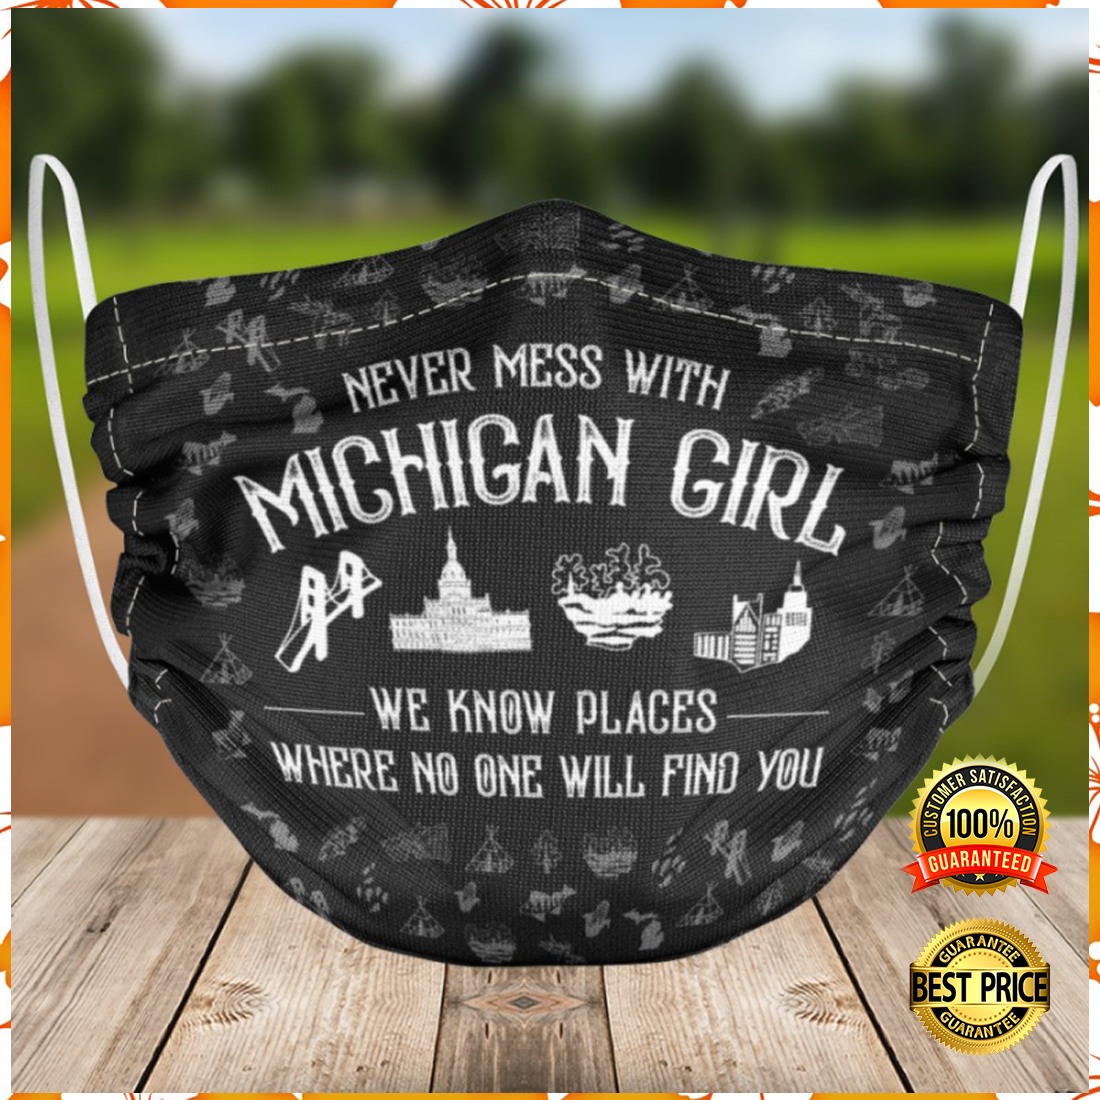 Never mess with Michigan girl cloth face mask 4